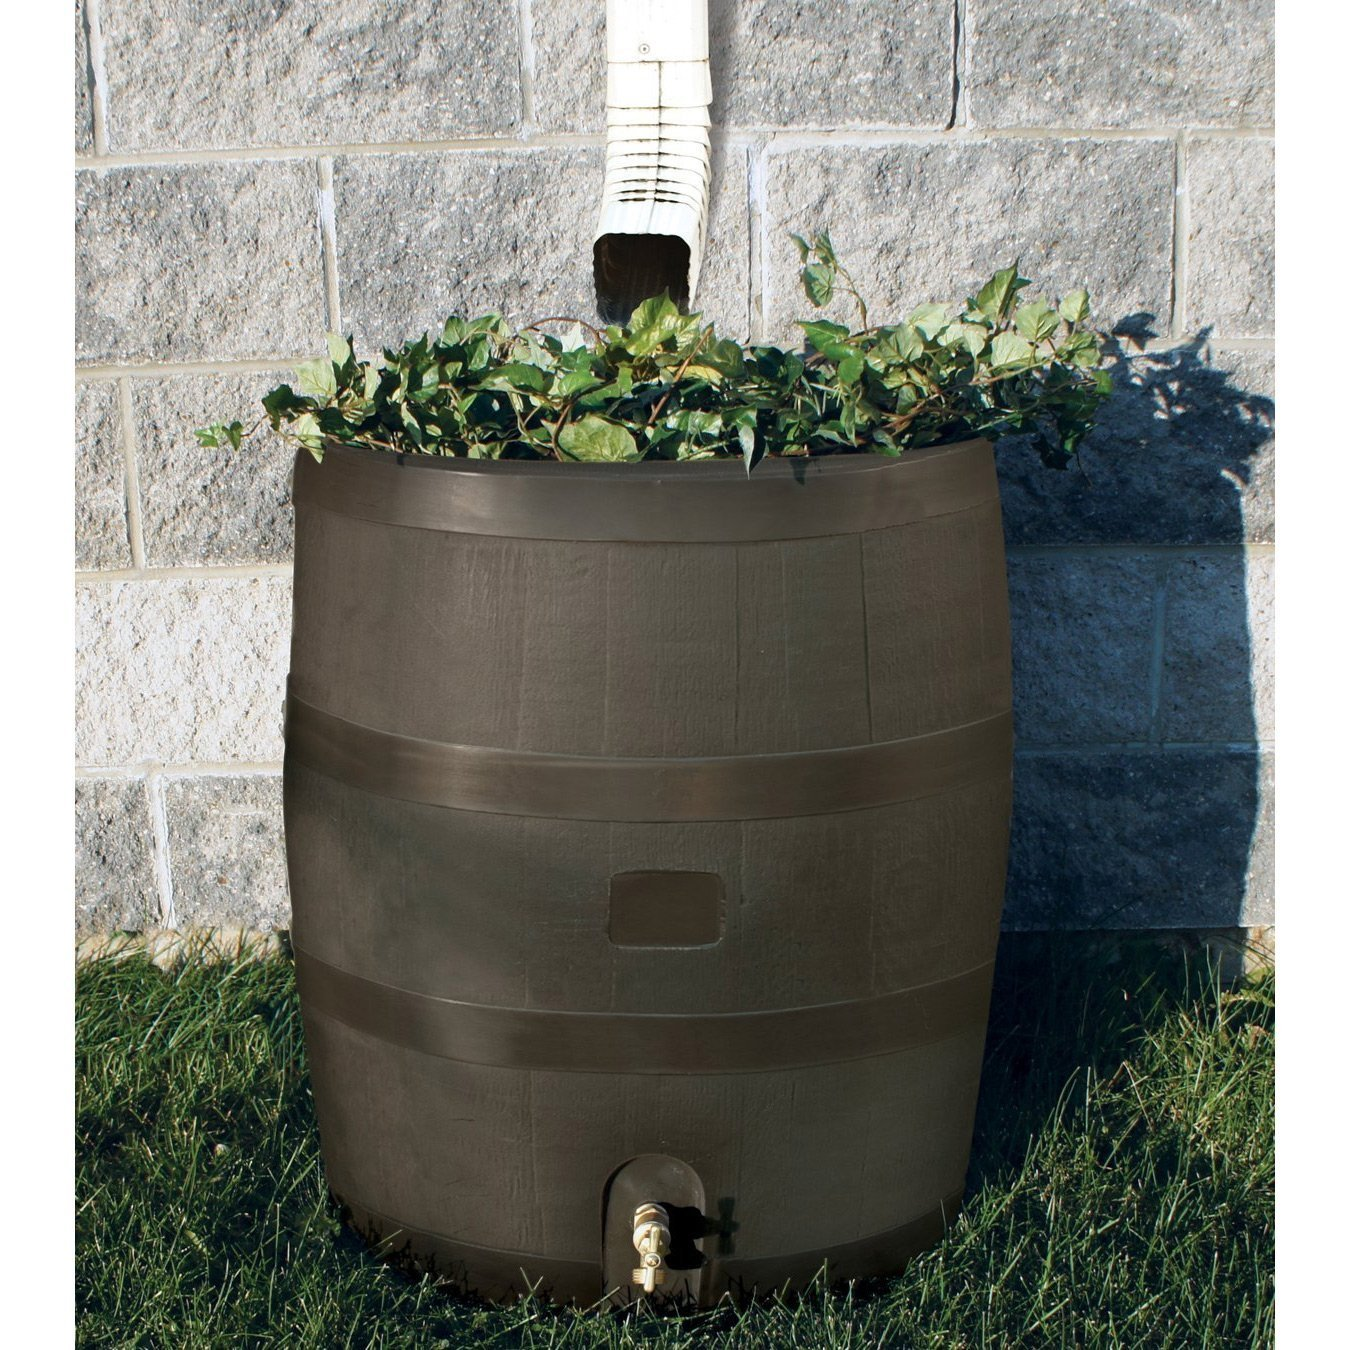 Round Rain Barrel with Built in Planter - 35 Gallon Capacity.